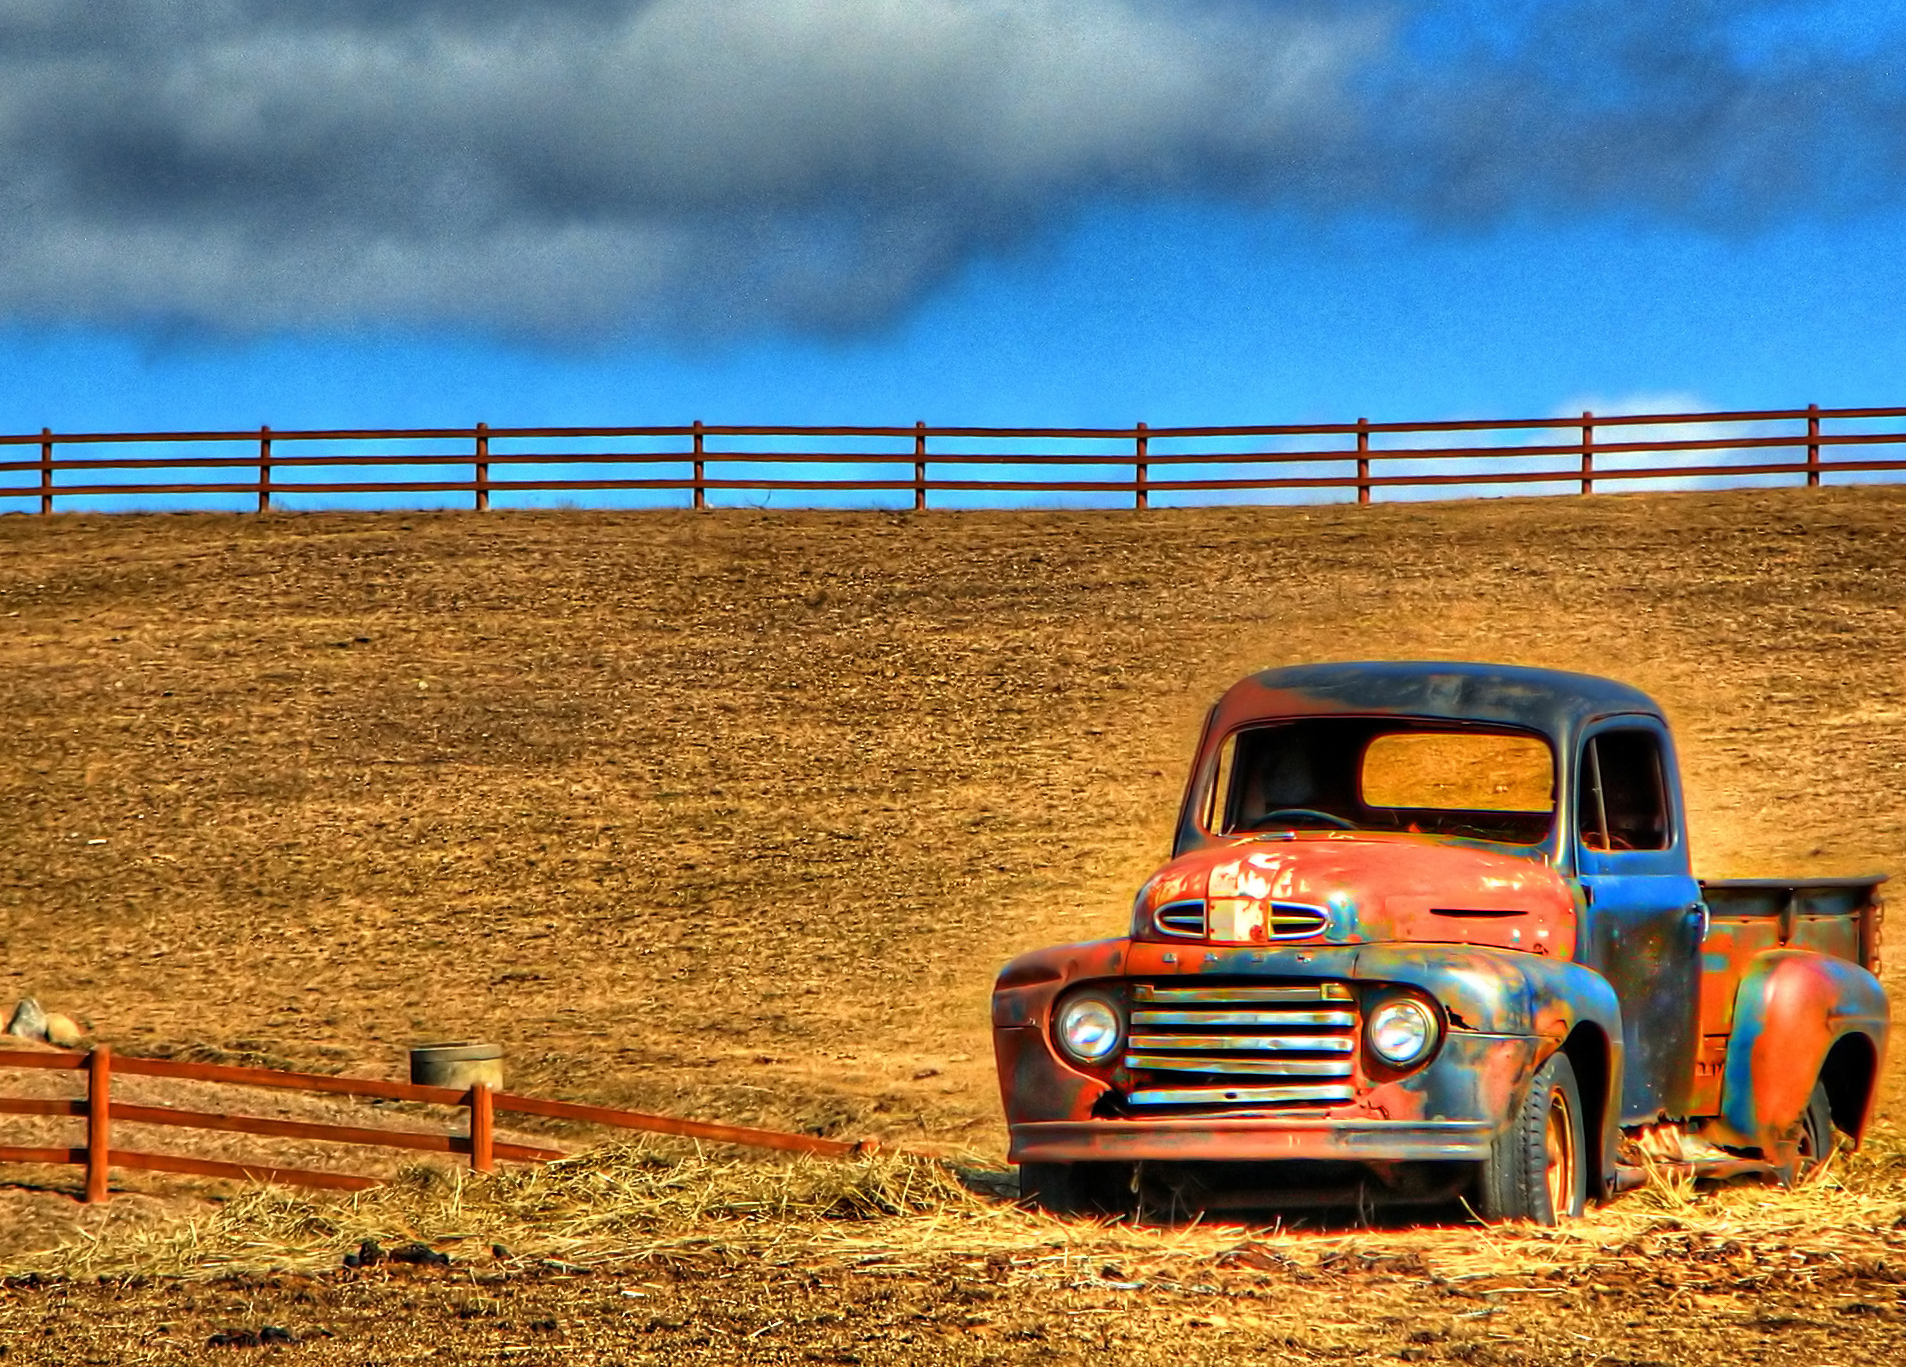 File:Old Ford pickup, Found in Field Dead.jpg - Wikimedia Commons